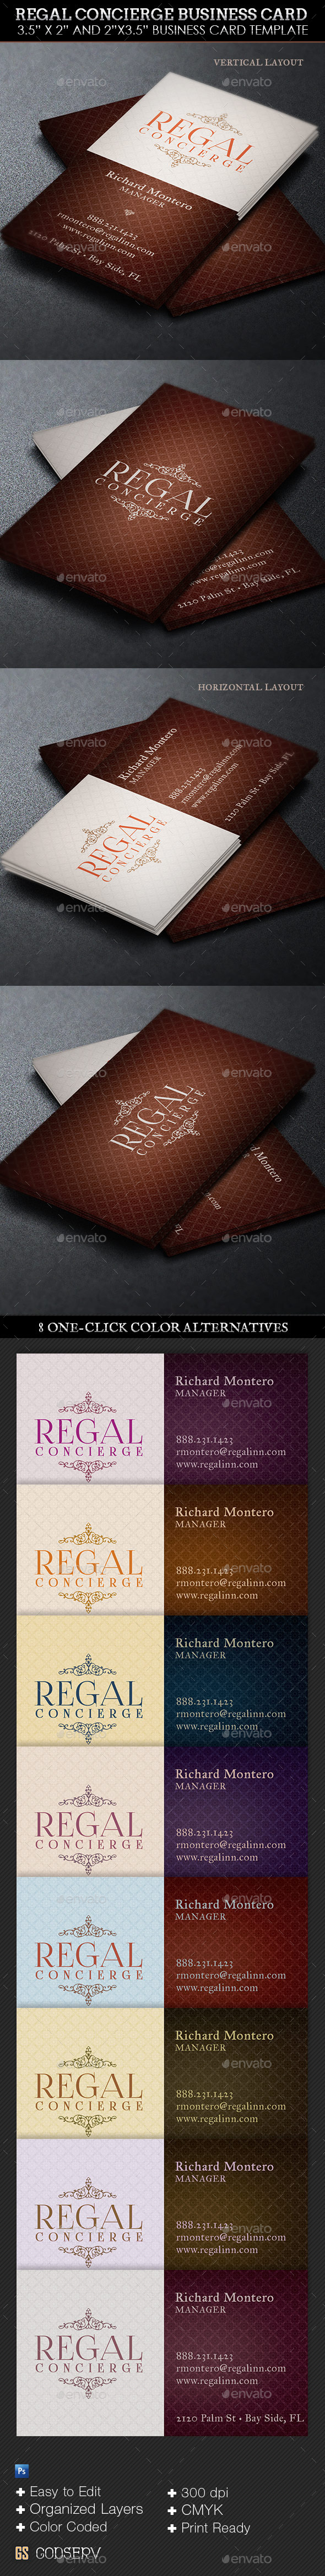 Regal Concierge Business Card Template - Industry Specific Business Cards